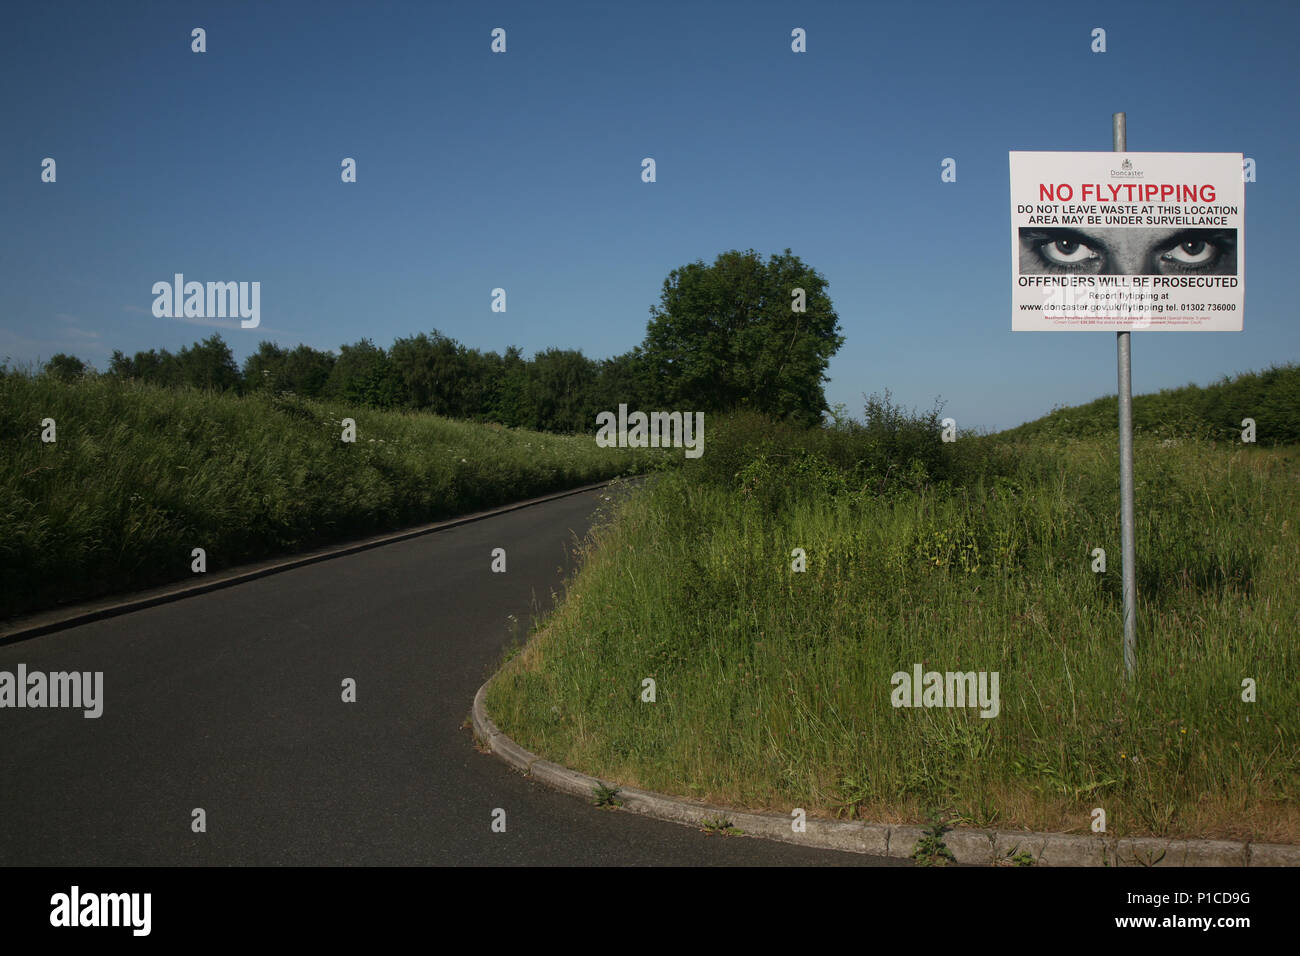 No Fly Tipping Sign Stock Photos & No Fly Tipping Sign